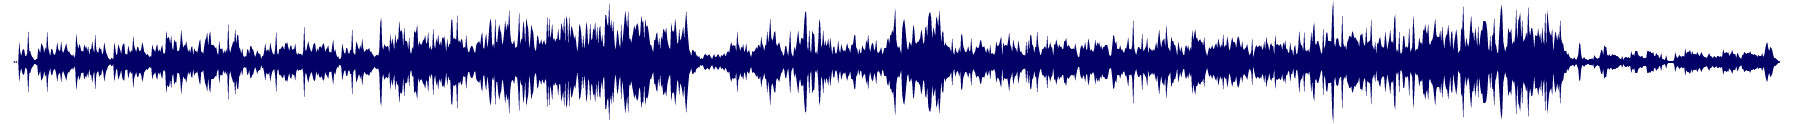 waveform of track #71781